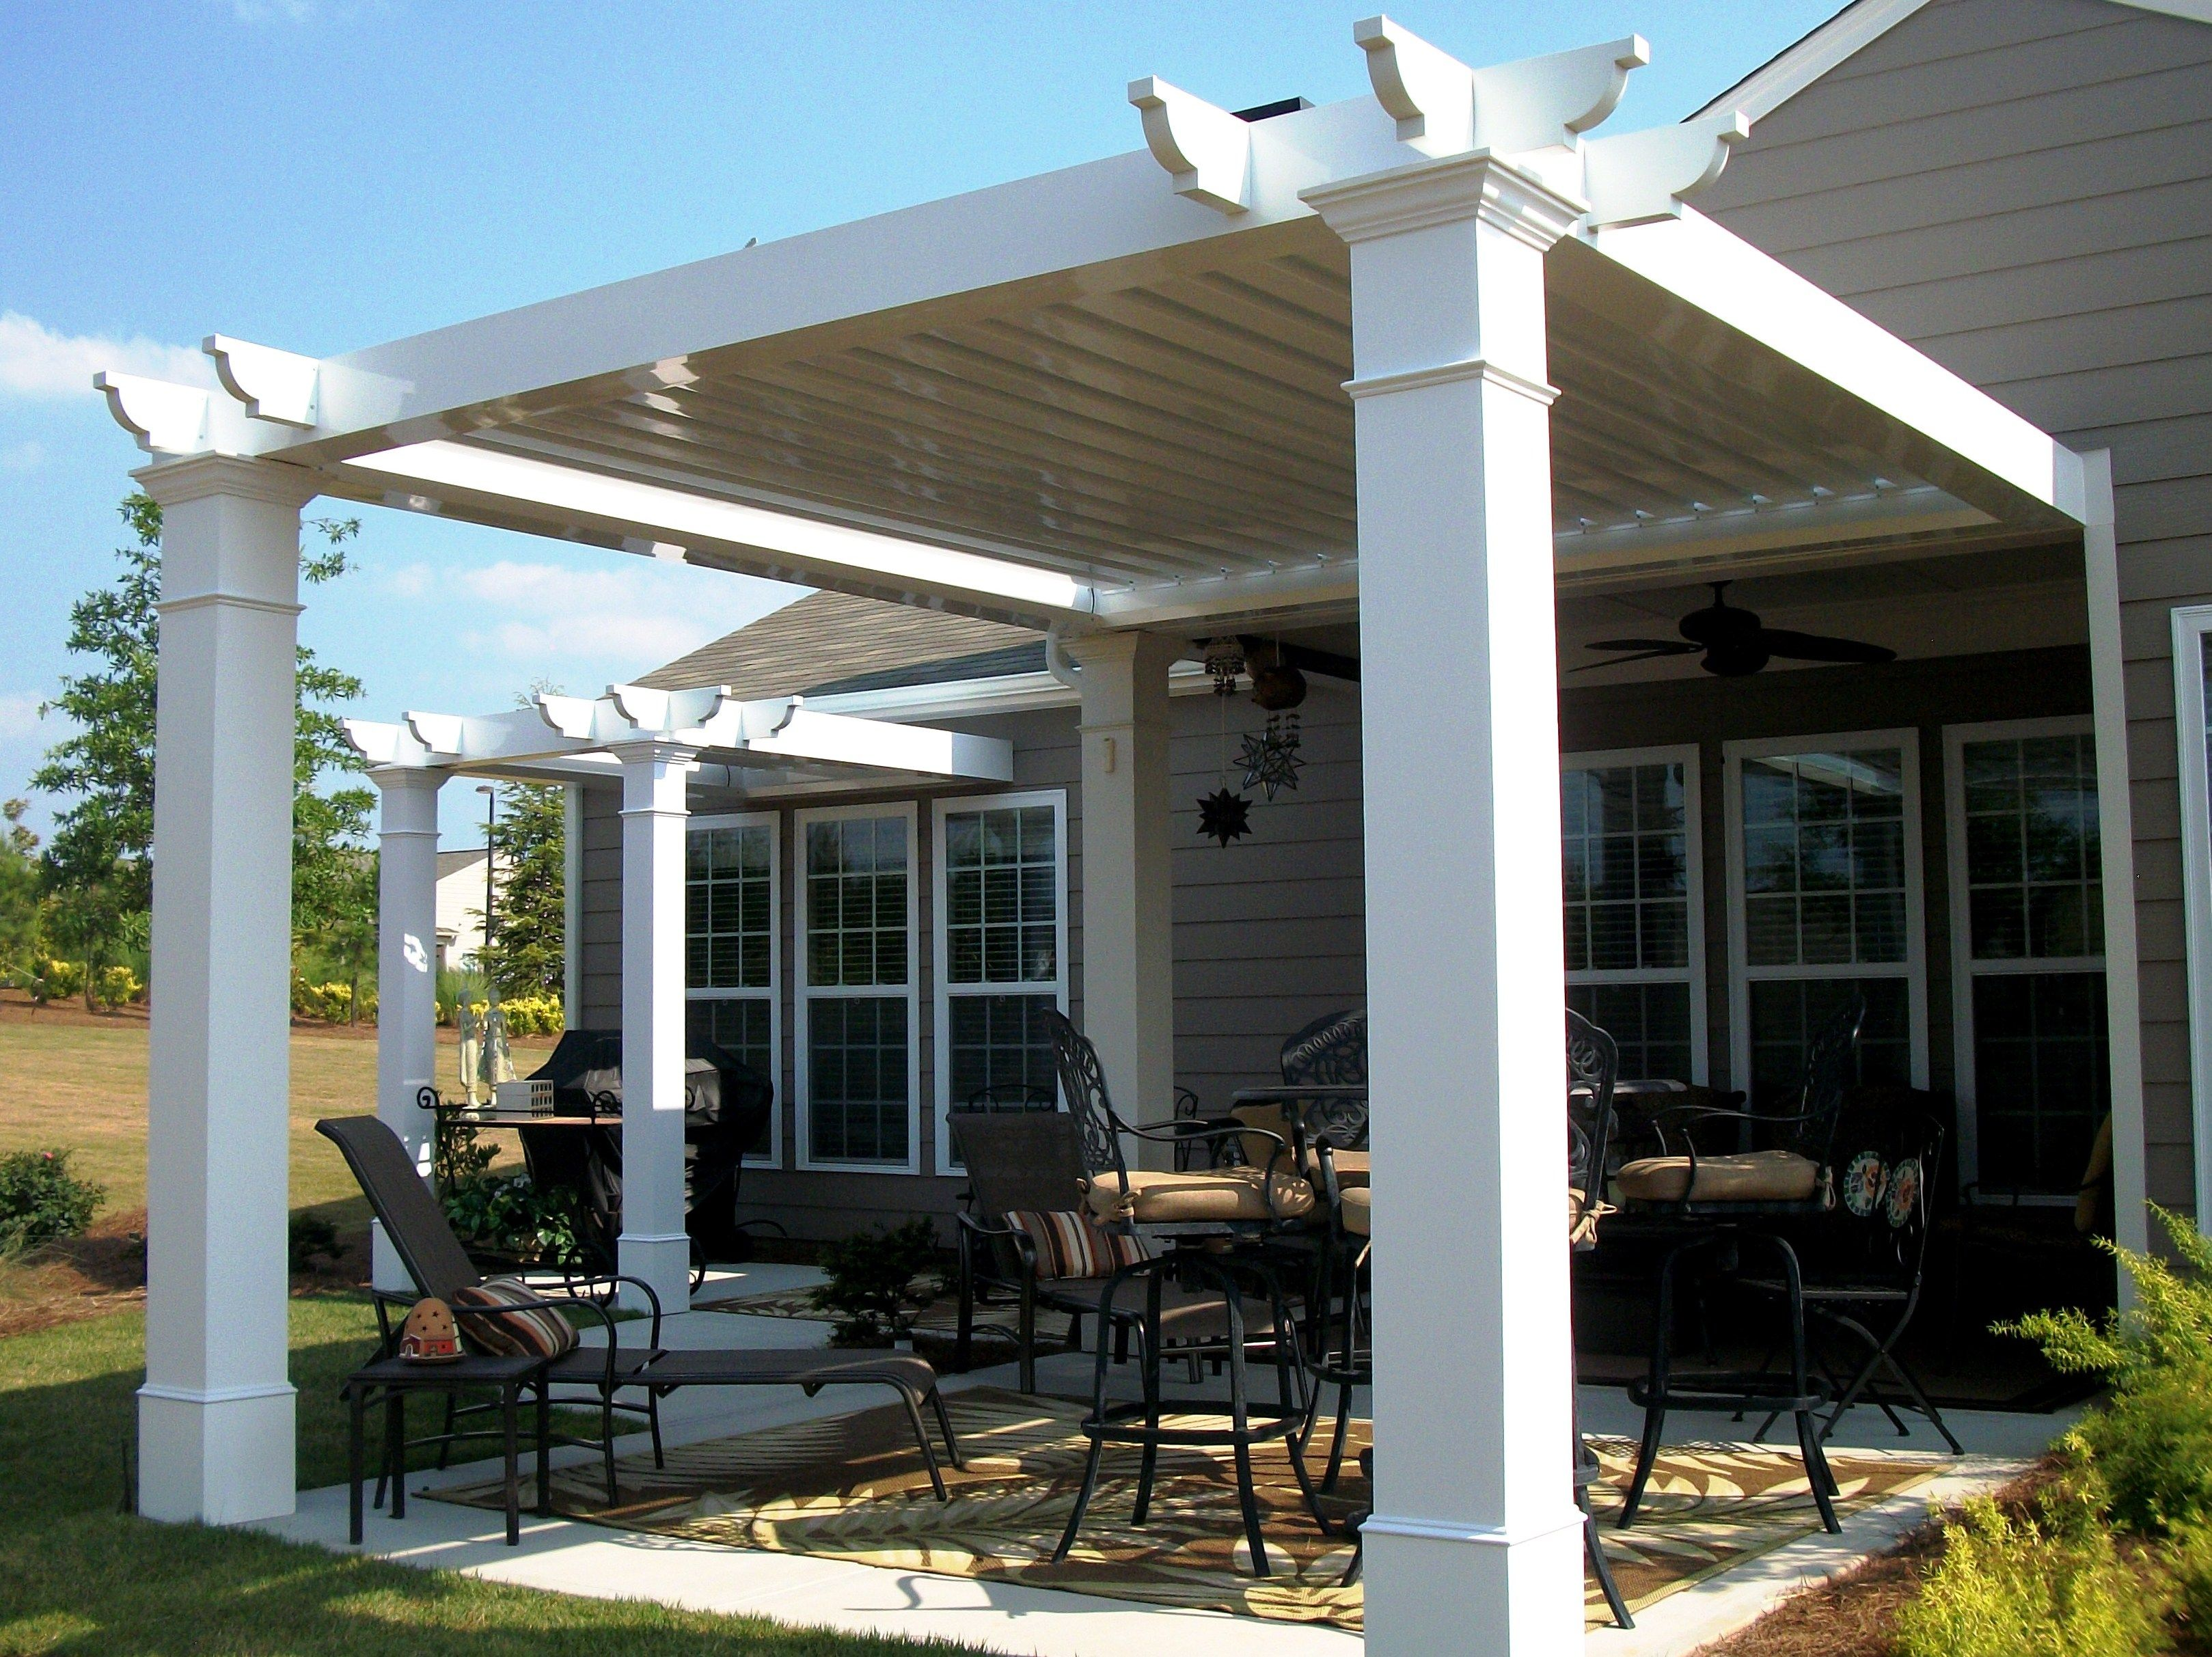 Modern Simple Pergola And Gazebo Design Trends Attached To House Patio Garden Pinterest